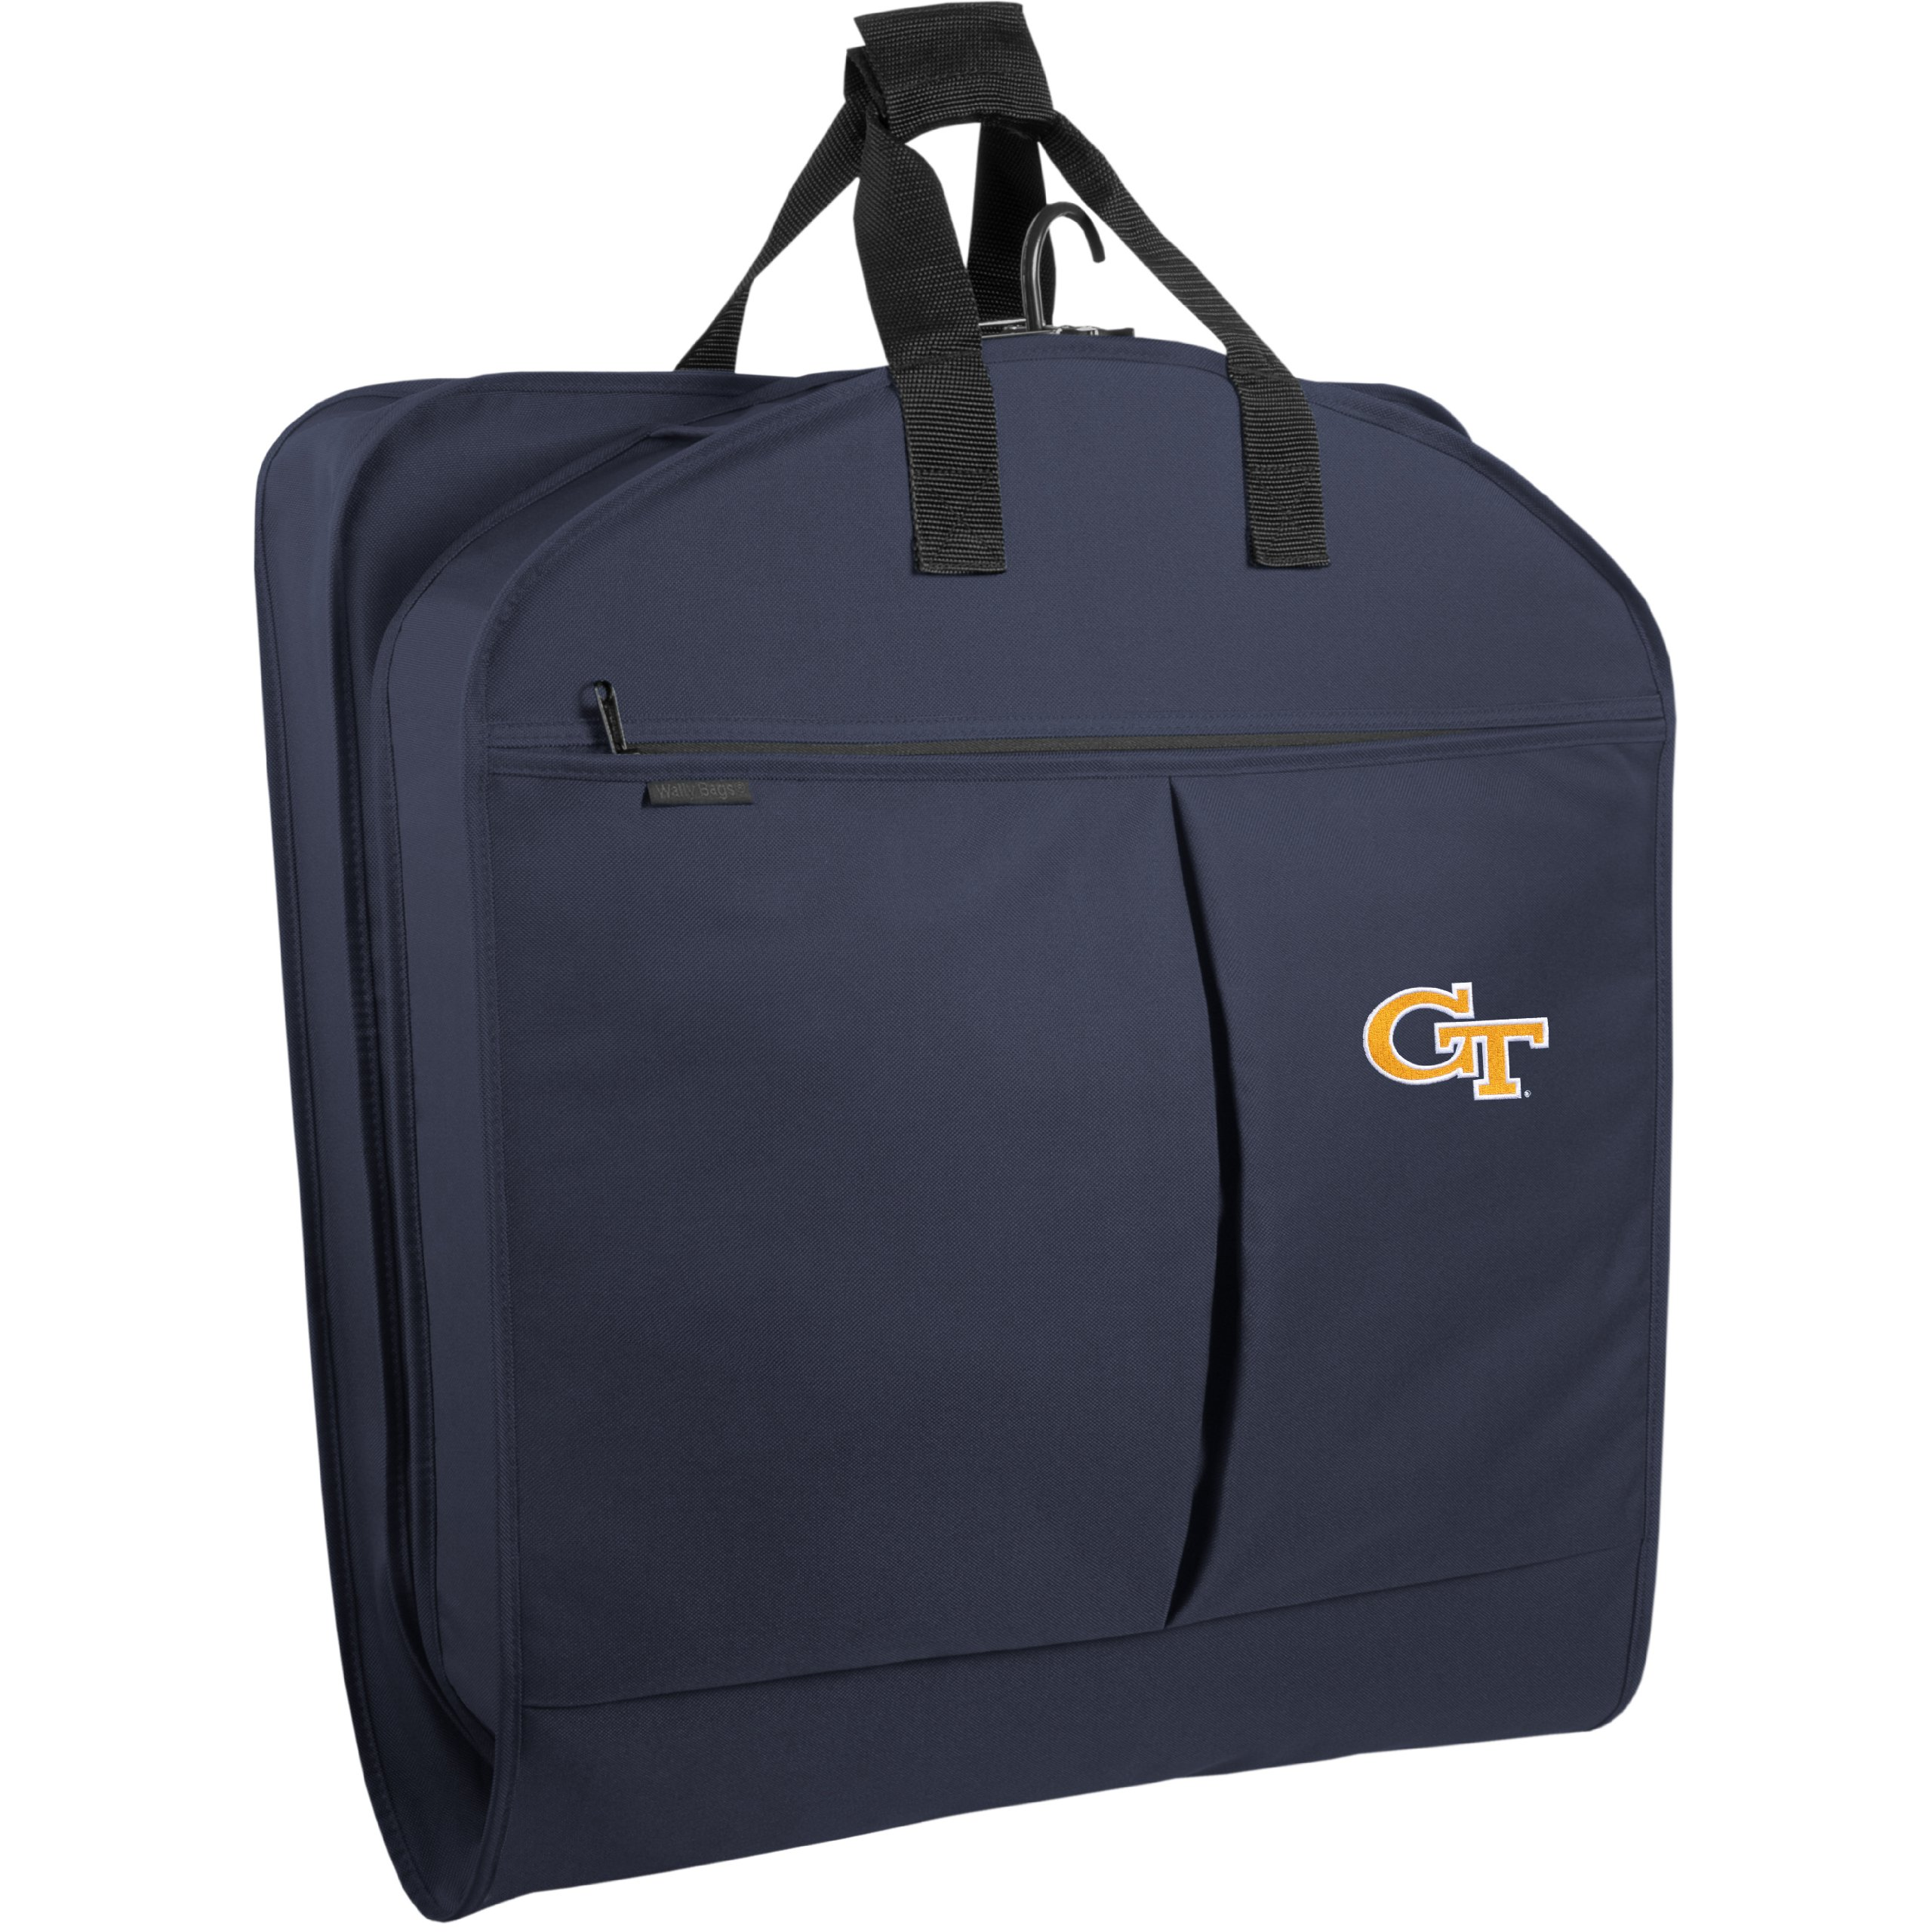 WallyBags Georgia Tech Yellow Jackets 40 Inch Suit Length Garment Bag with Pockets, Navy, One Size